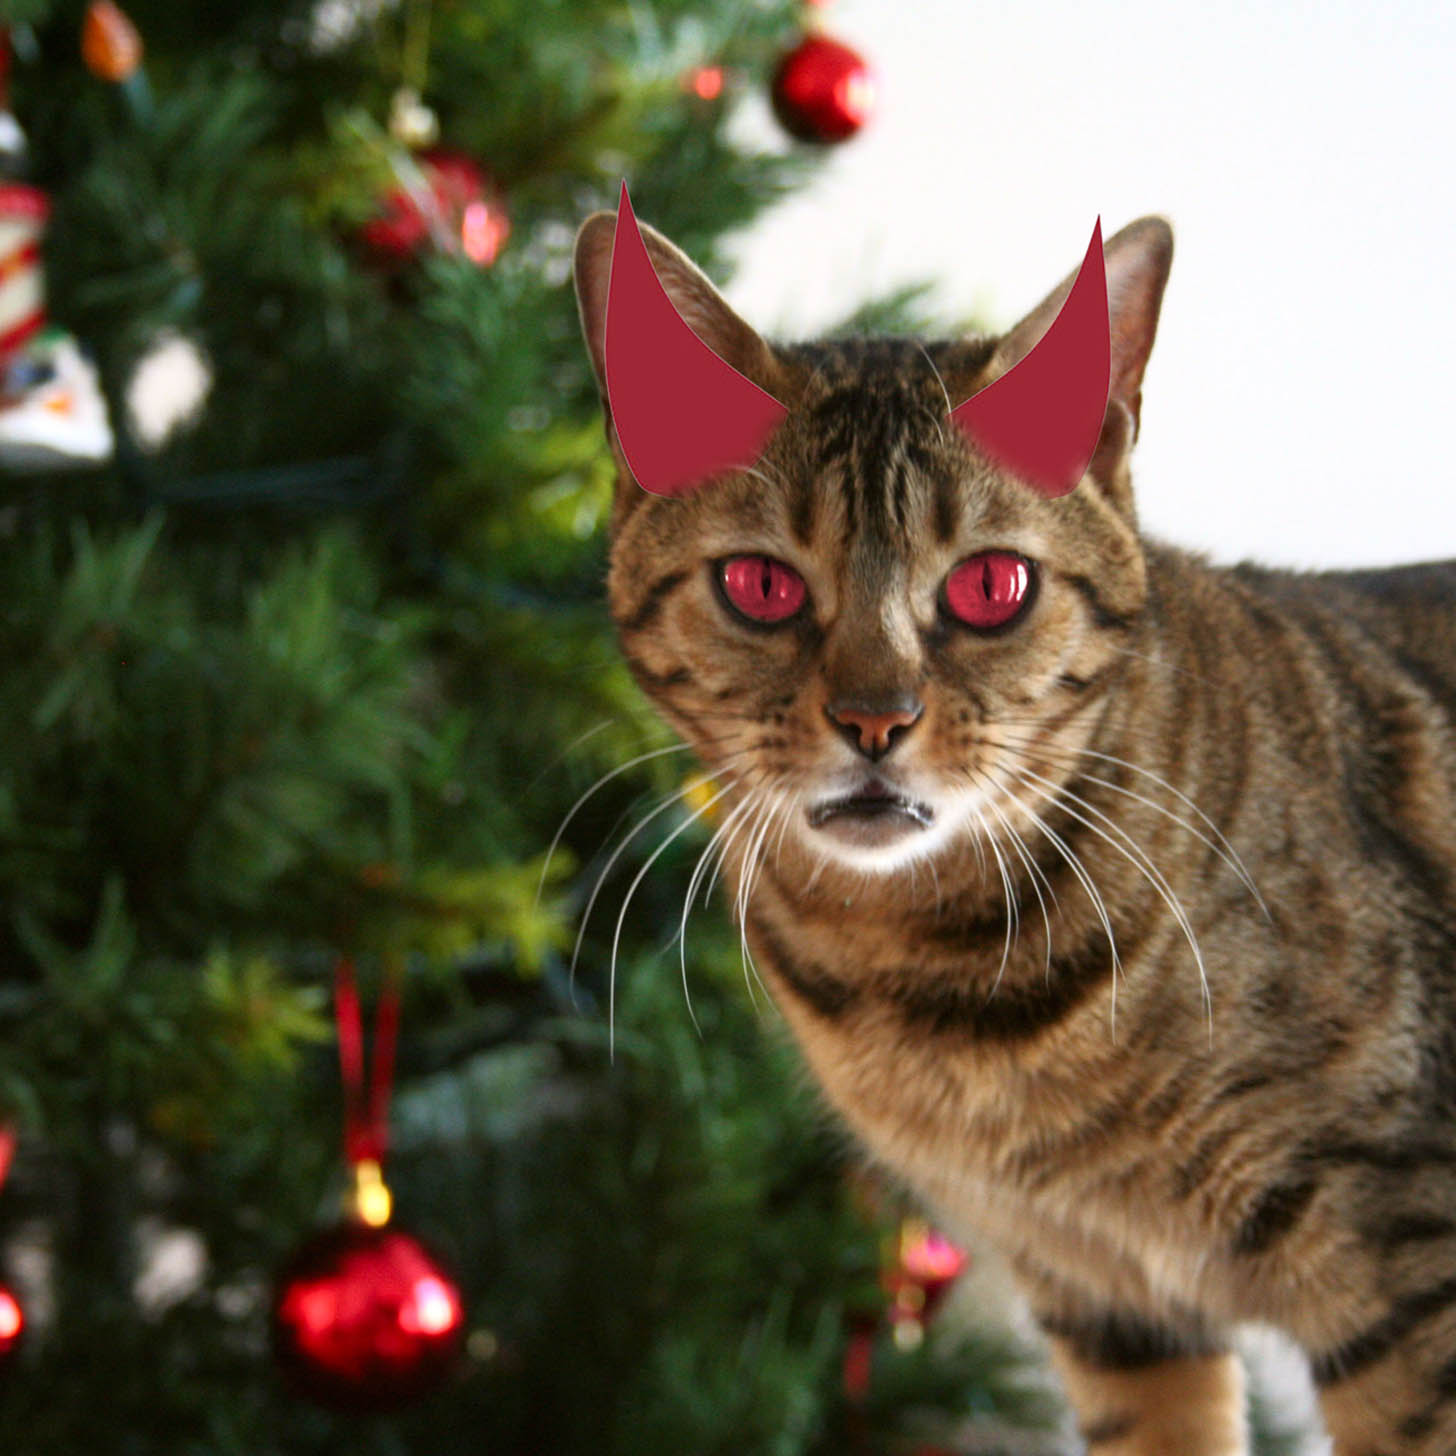 Are Christmas Trees Bad For Cats: Cats Attack Christmas Trees